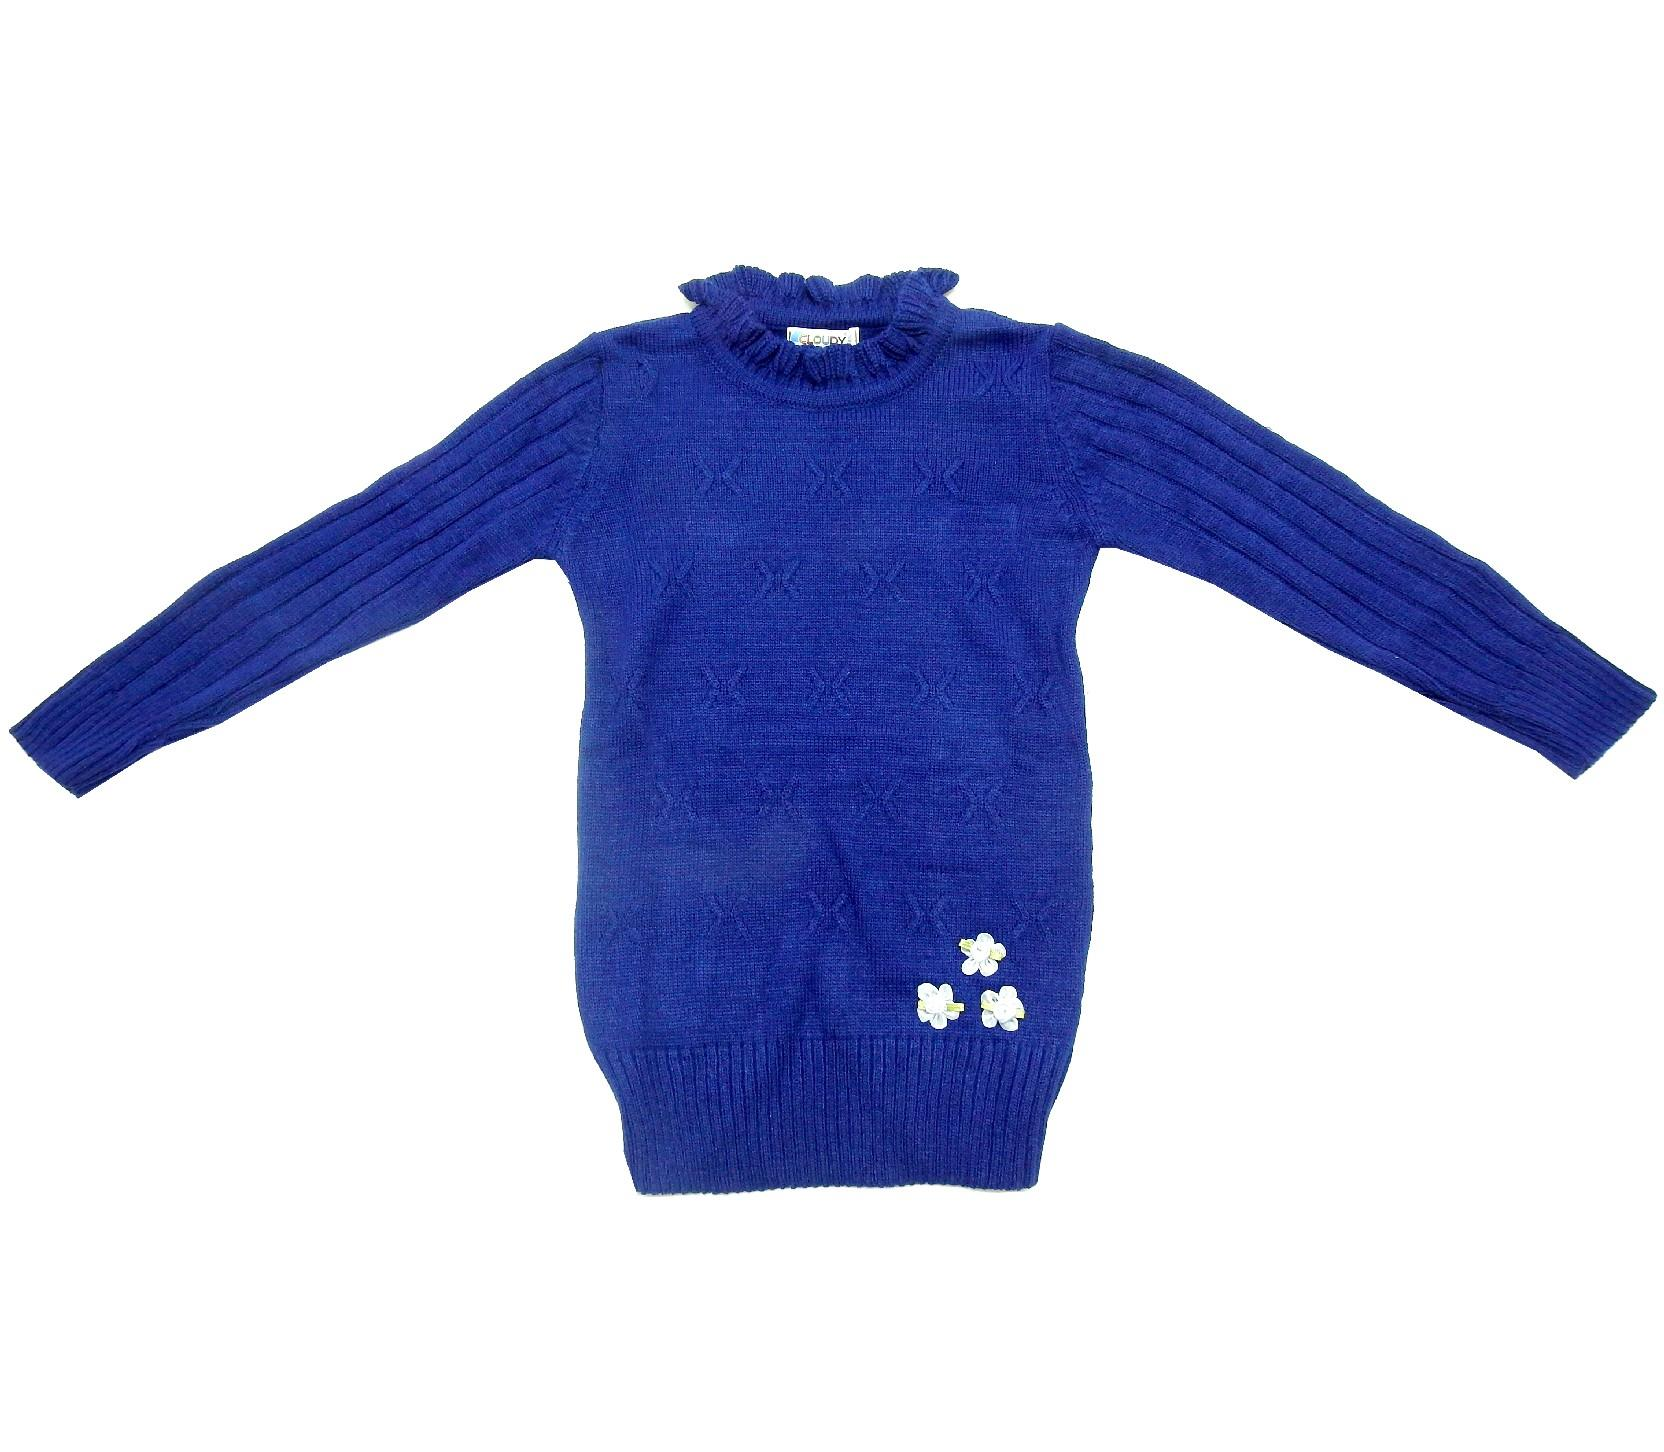 WHOLESALE FLOWERY APPLIQUE KNITTED DESIGN TUNIC FOR GIRL (5-7-9 AGE)